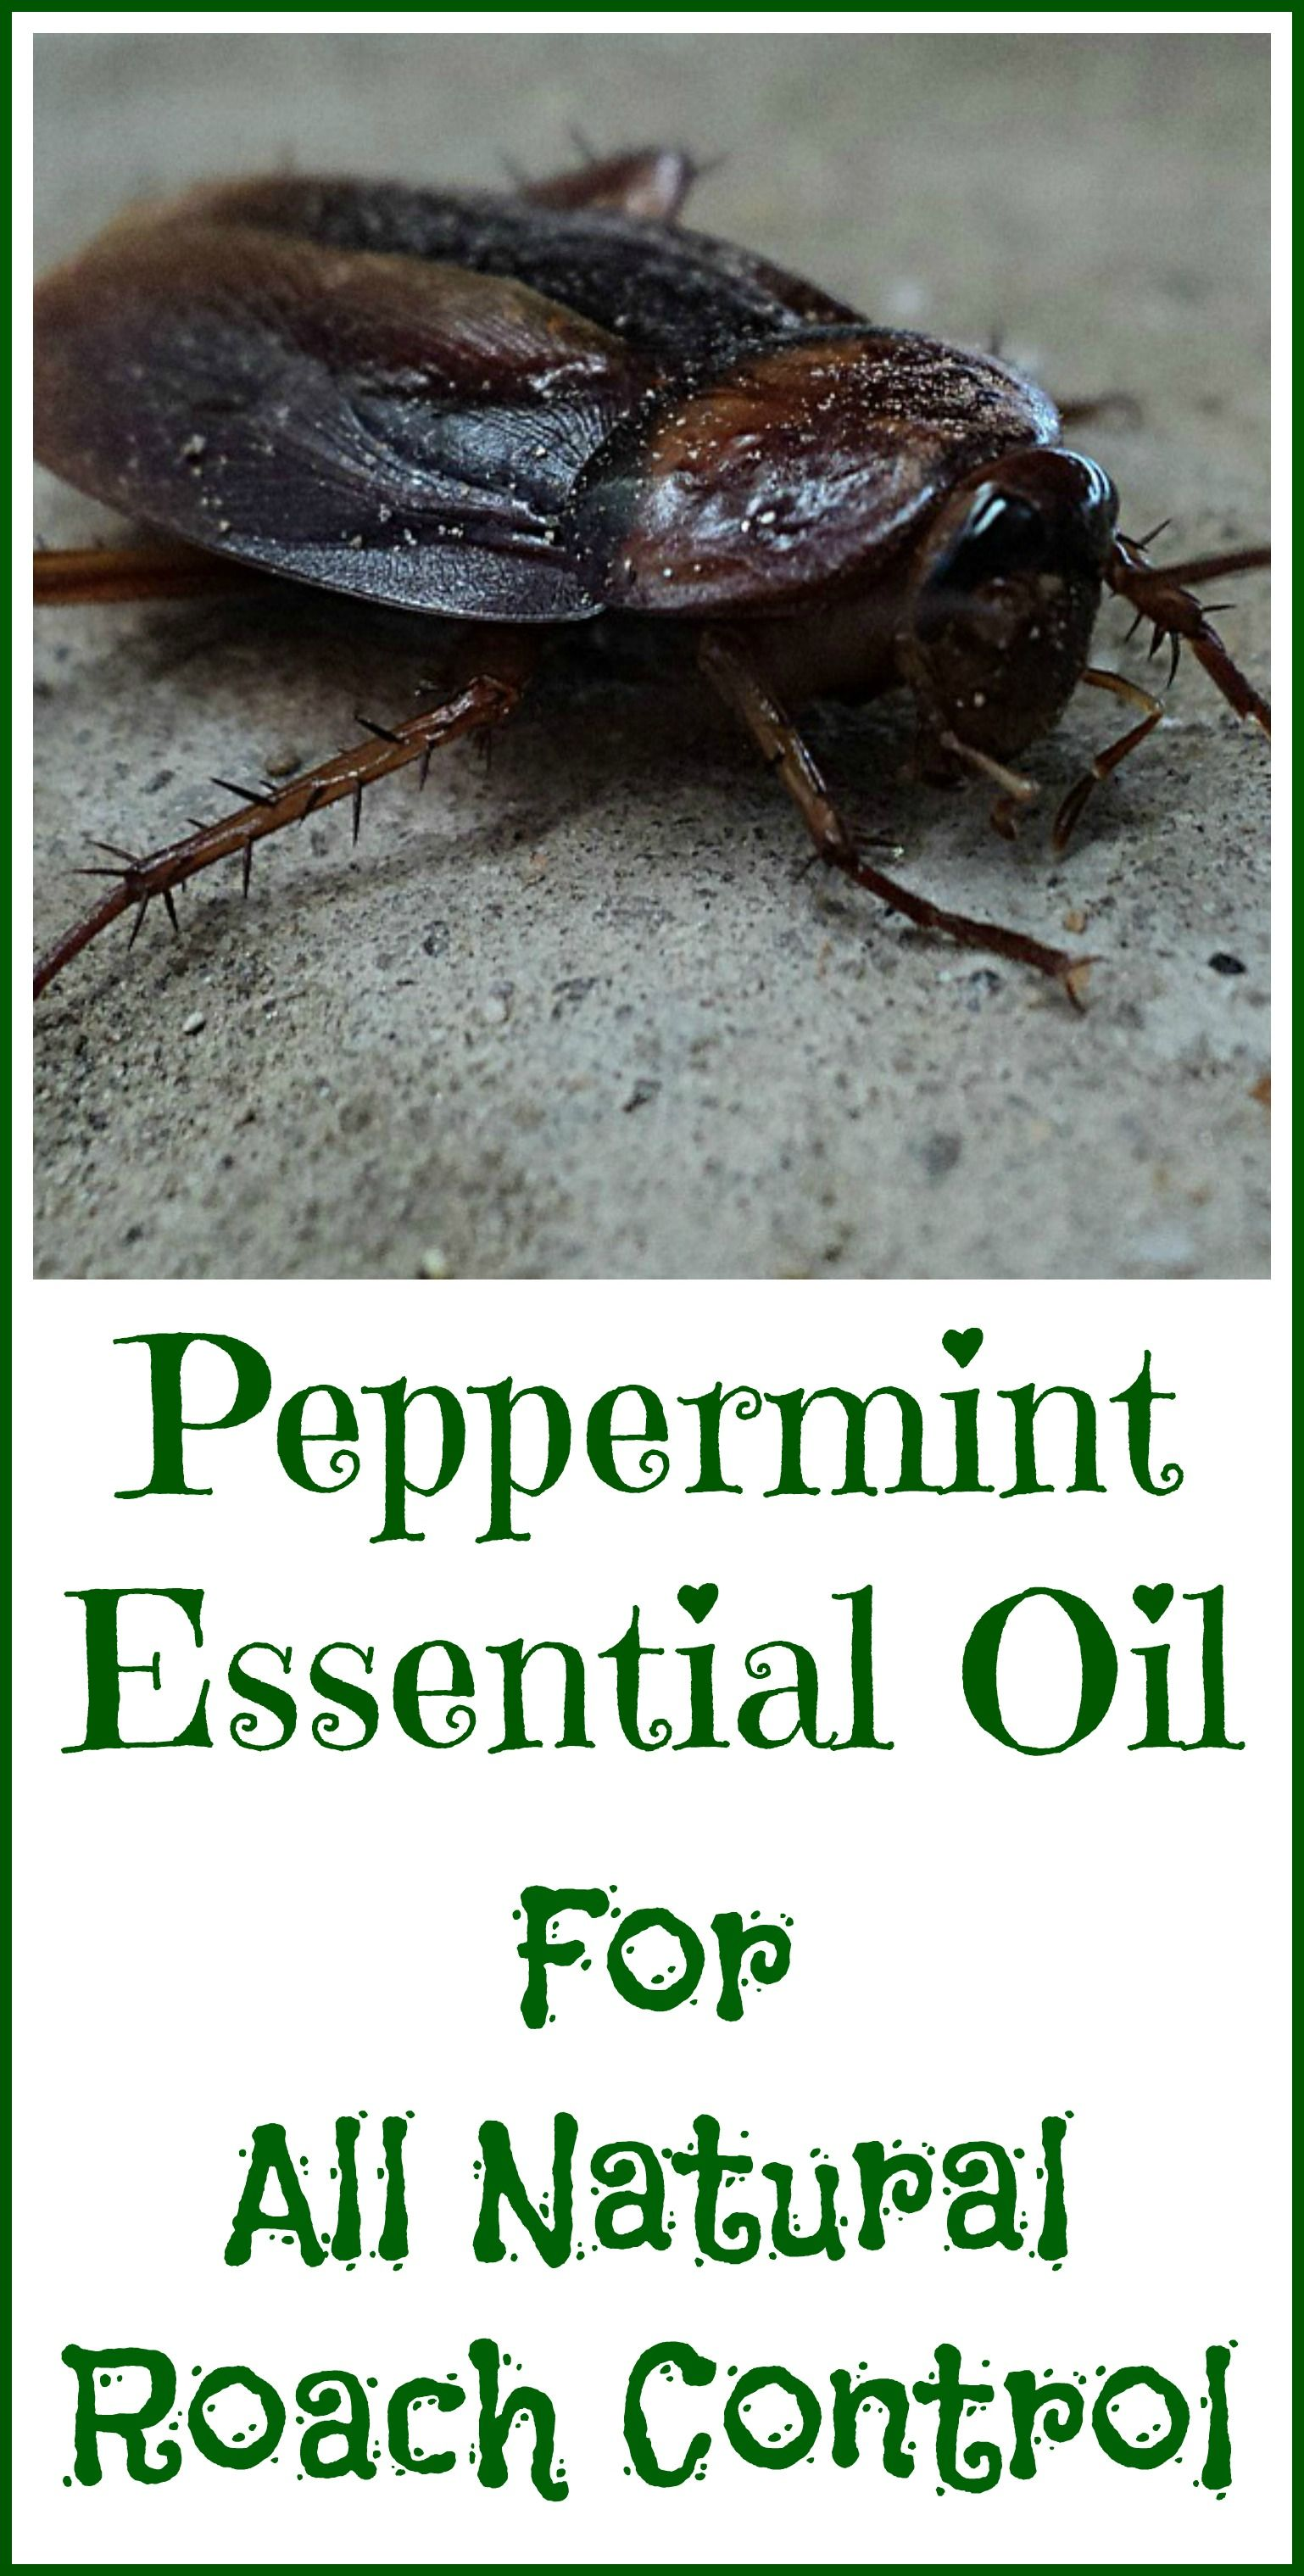 Peppermint Oil For Roaches Organic Palace Queen Essential Oils Roaches Peppermint Essential Oil Roaches